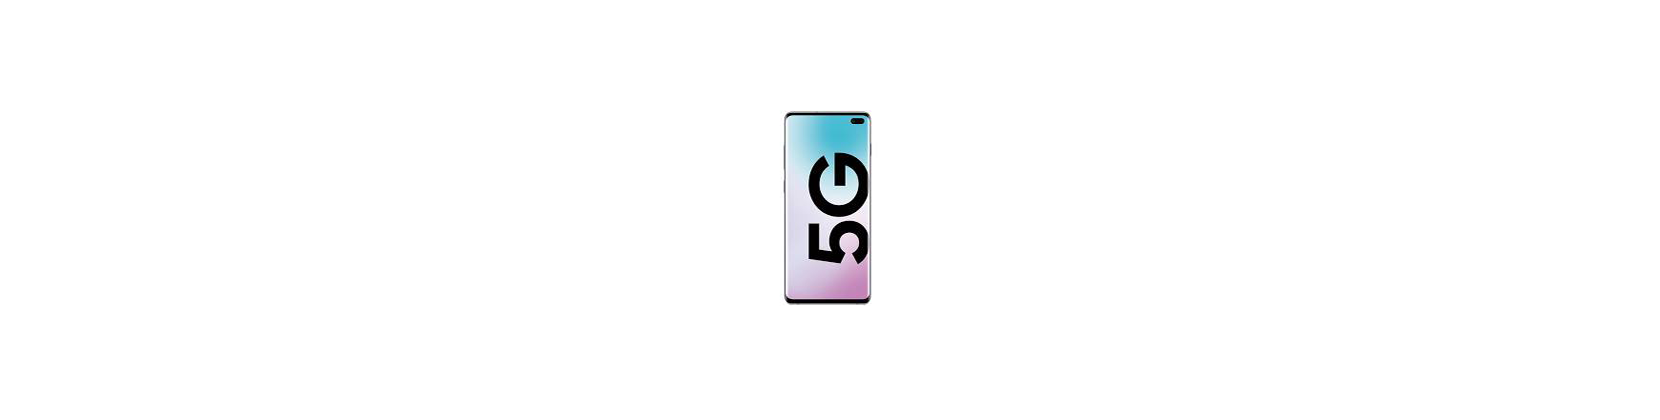 Samsung S10 5G G977b Components and Accessories